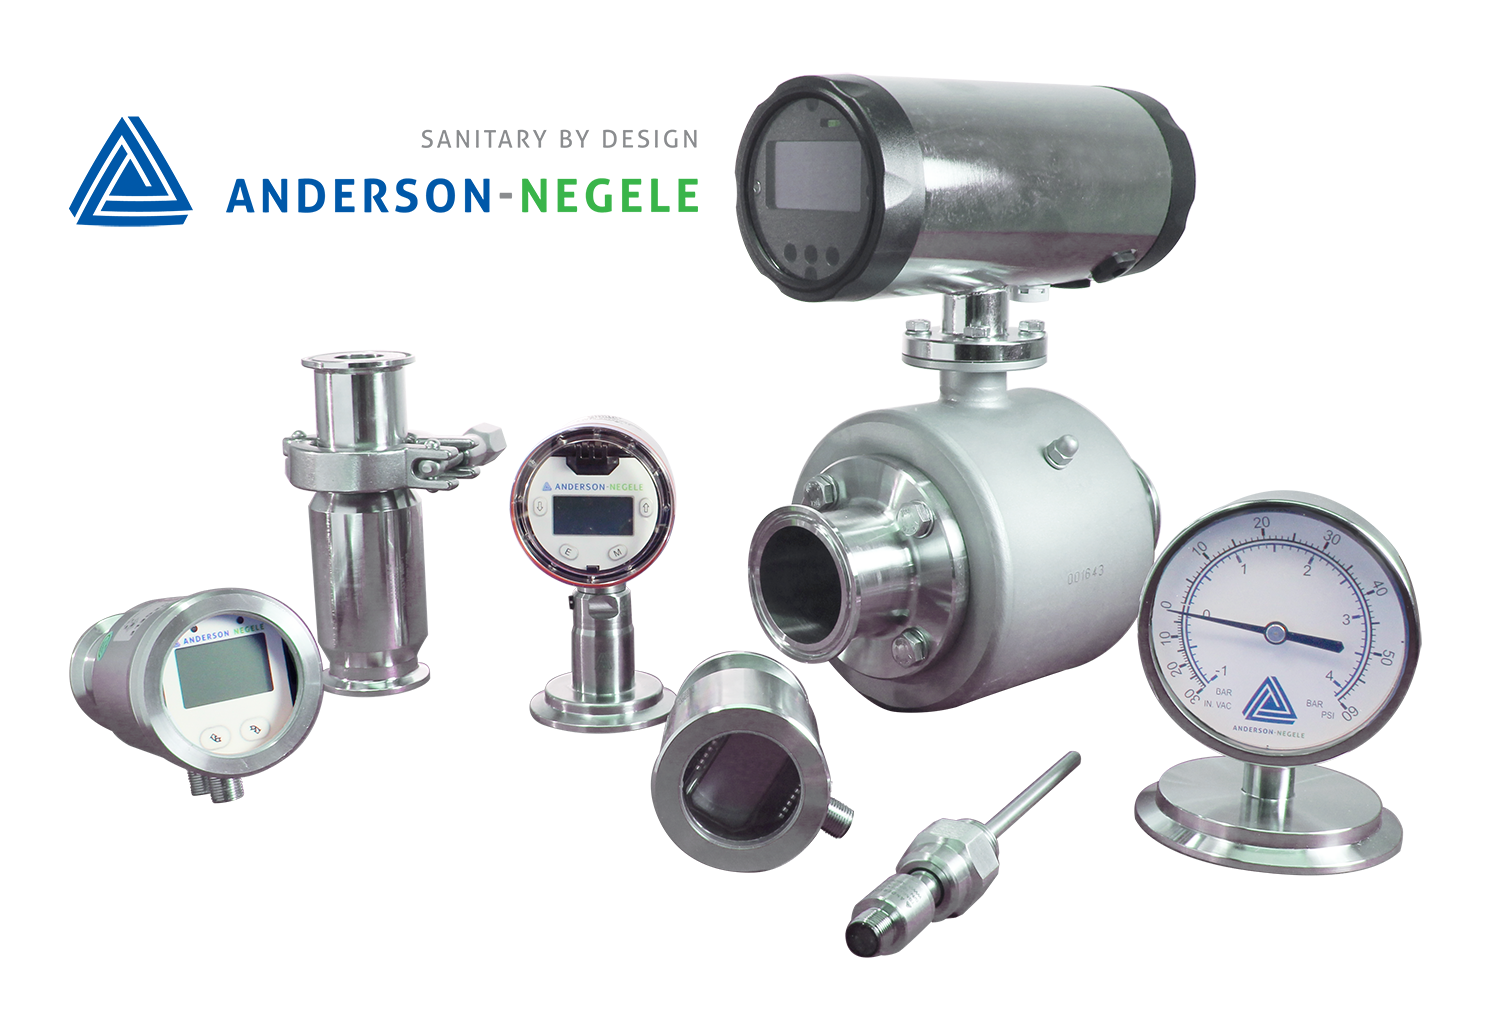 Anderson-Negele Product Family